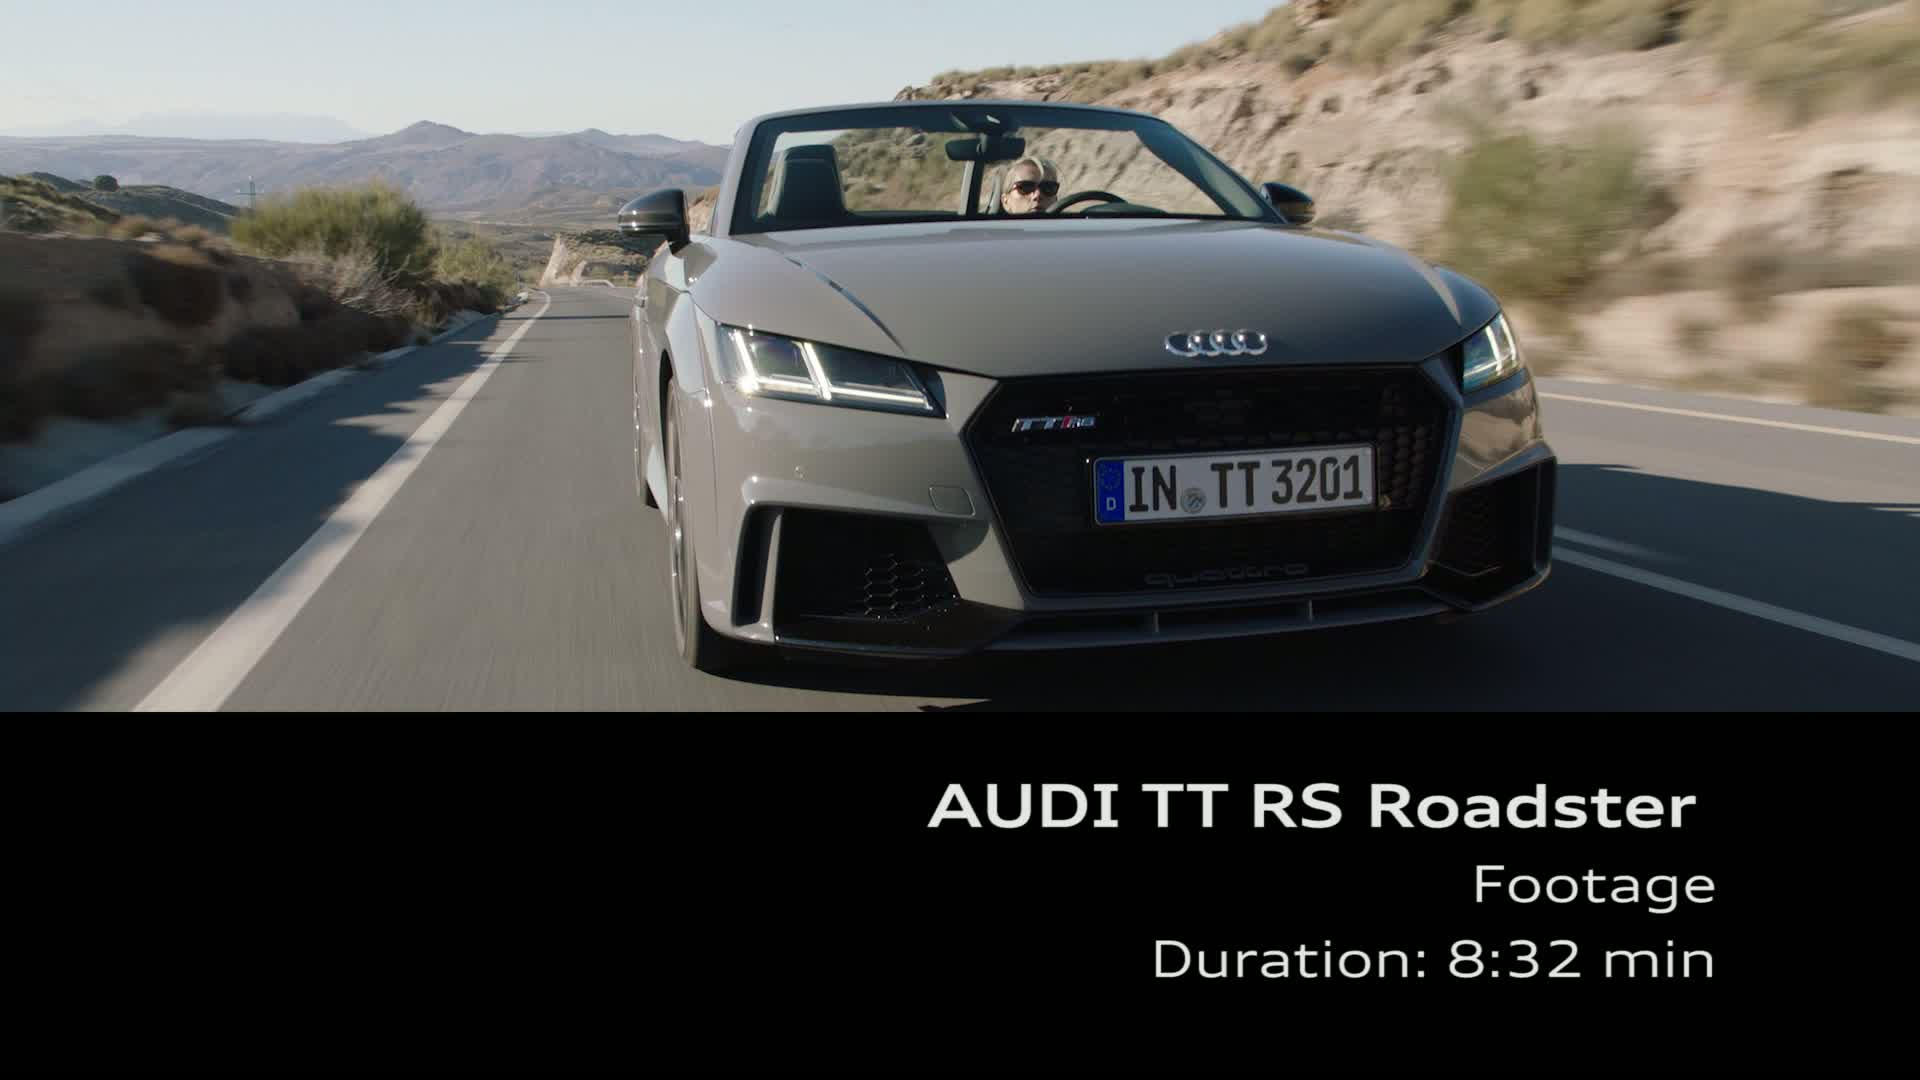 Audi TT RS Roadster - Footage